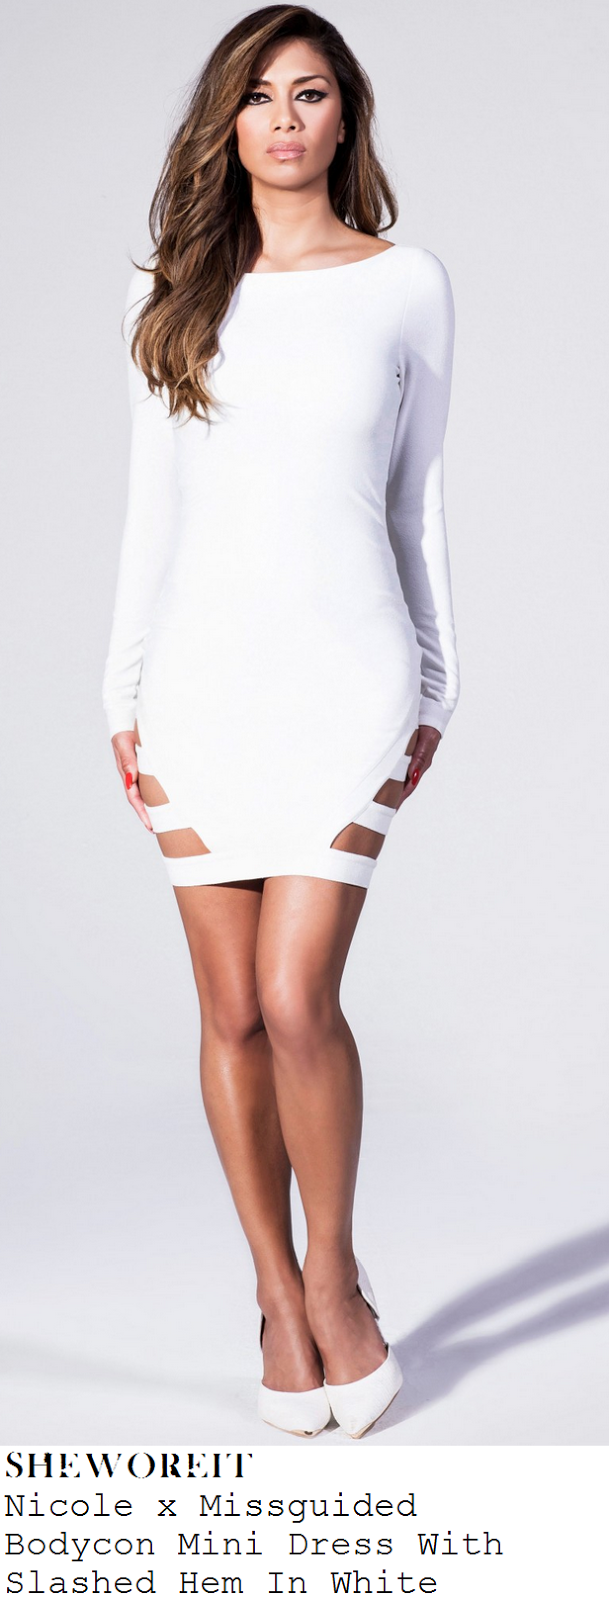 sam-faiers-white-long-sleeve-bodycon-bandage-mini-dress-with-cut-out-thigh-hem-detail-towie-boxing